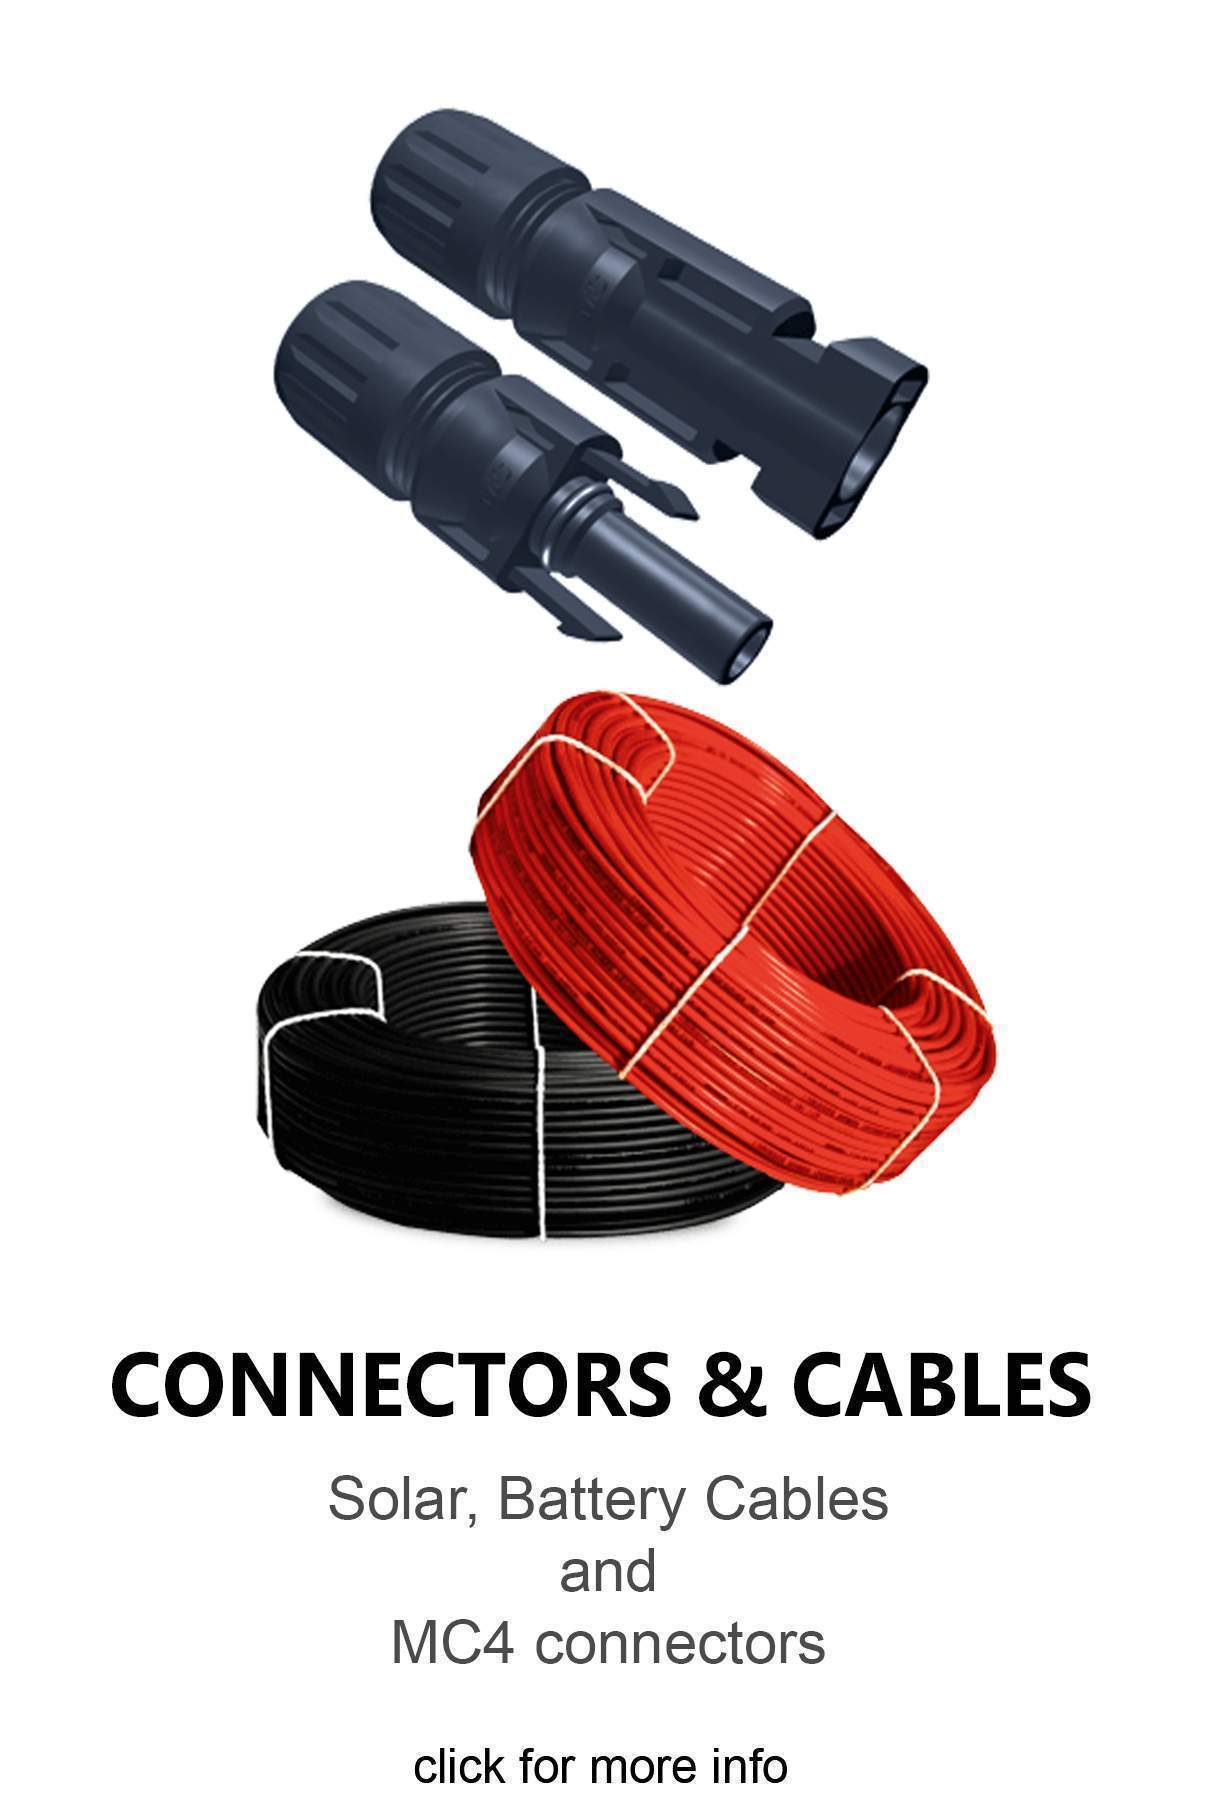 mc4 connectors, solar wire, battery cables Cape Town